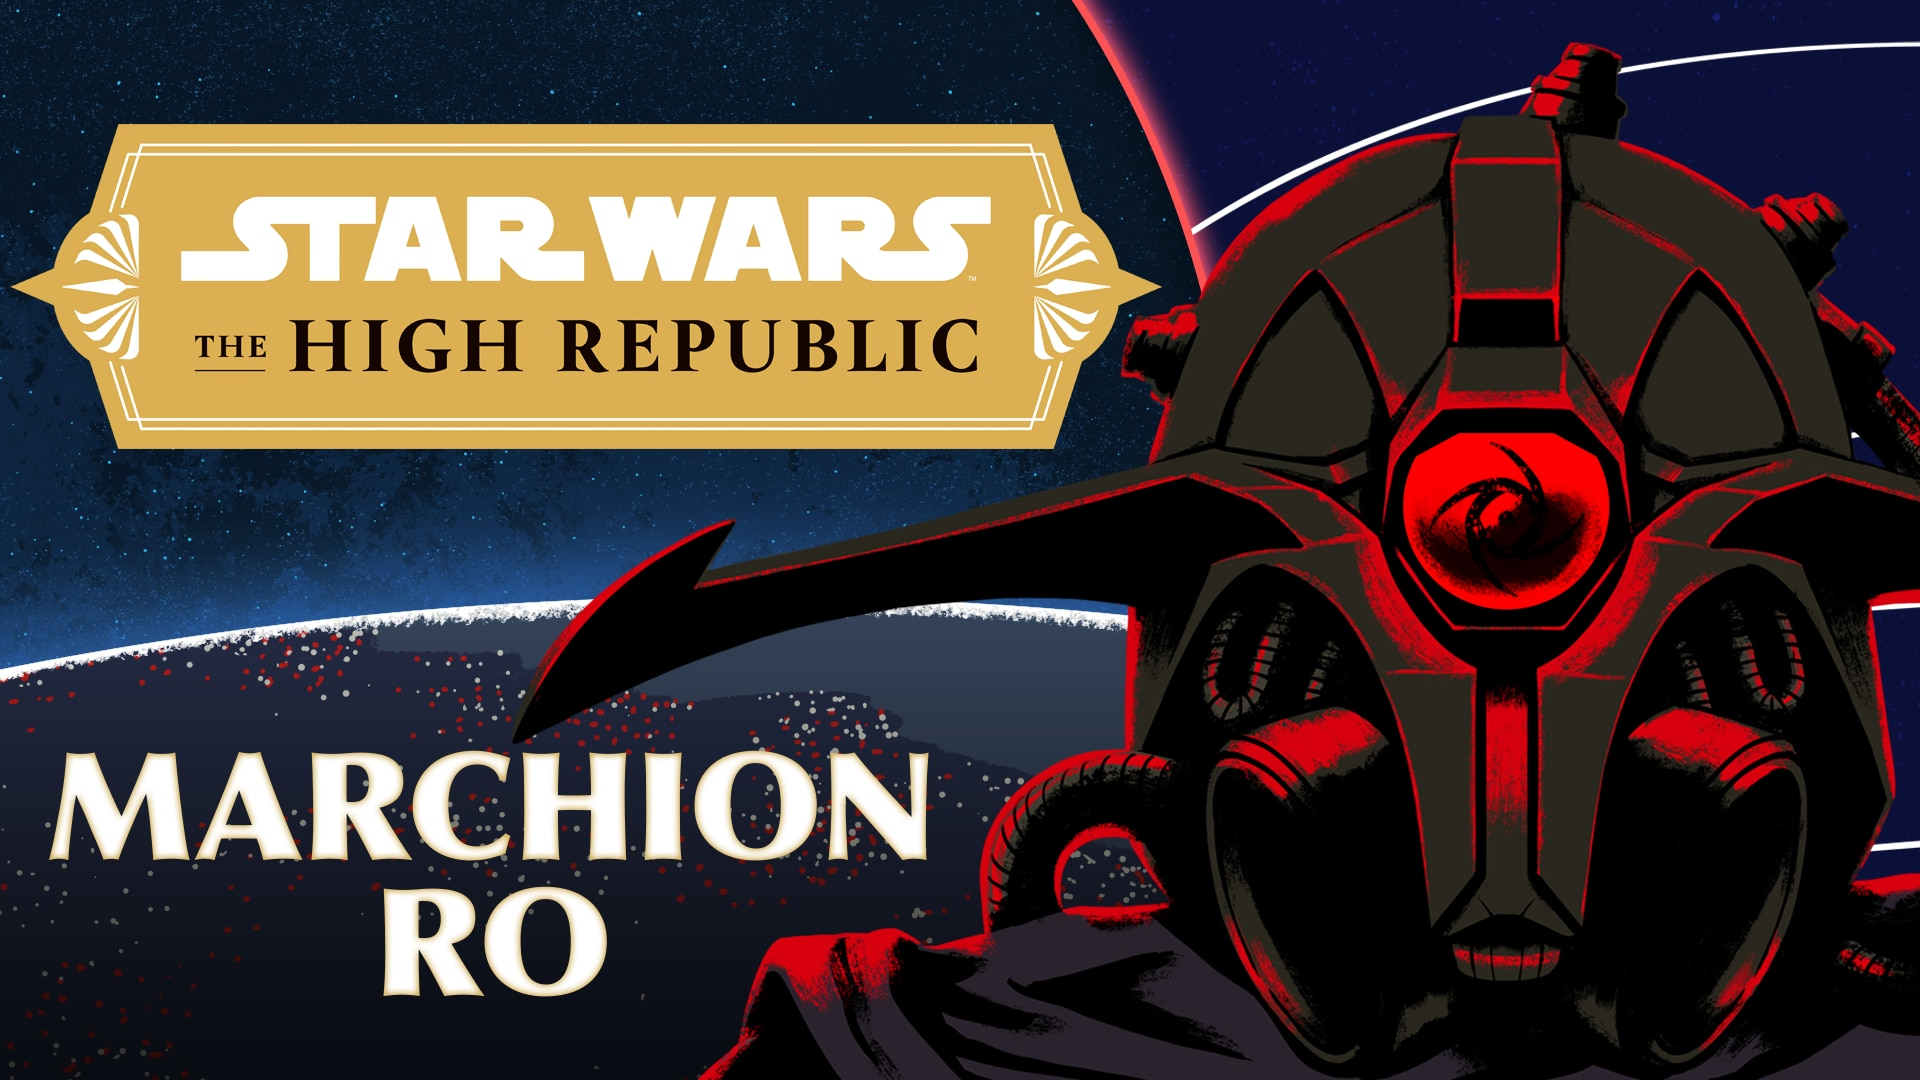 Marchion Ro | Characters of Star Wars: The High Republic